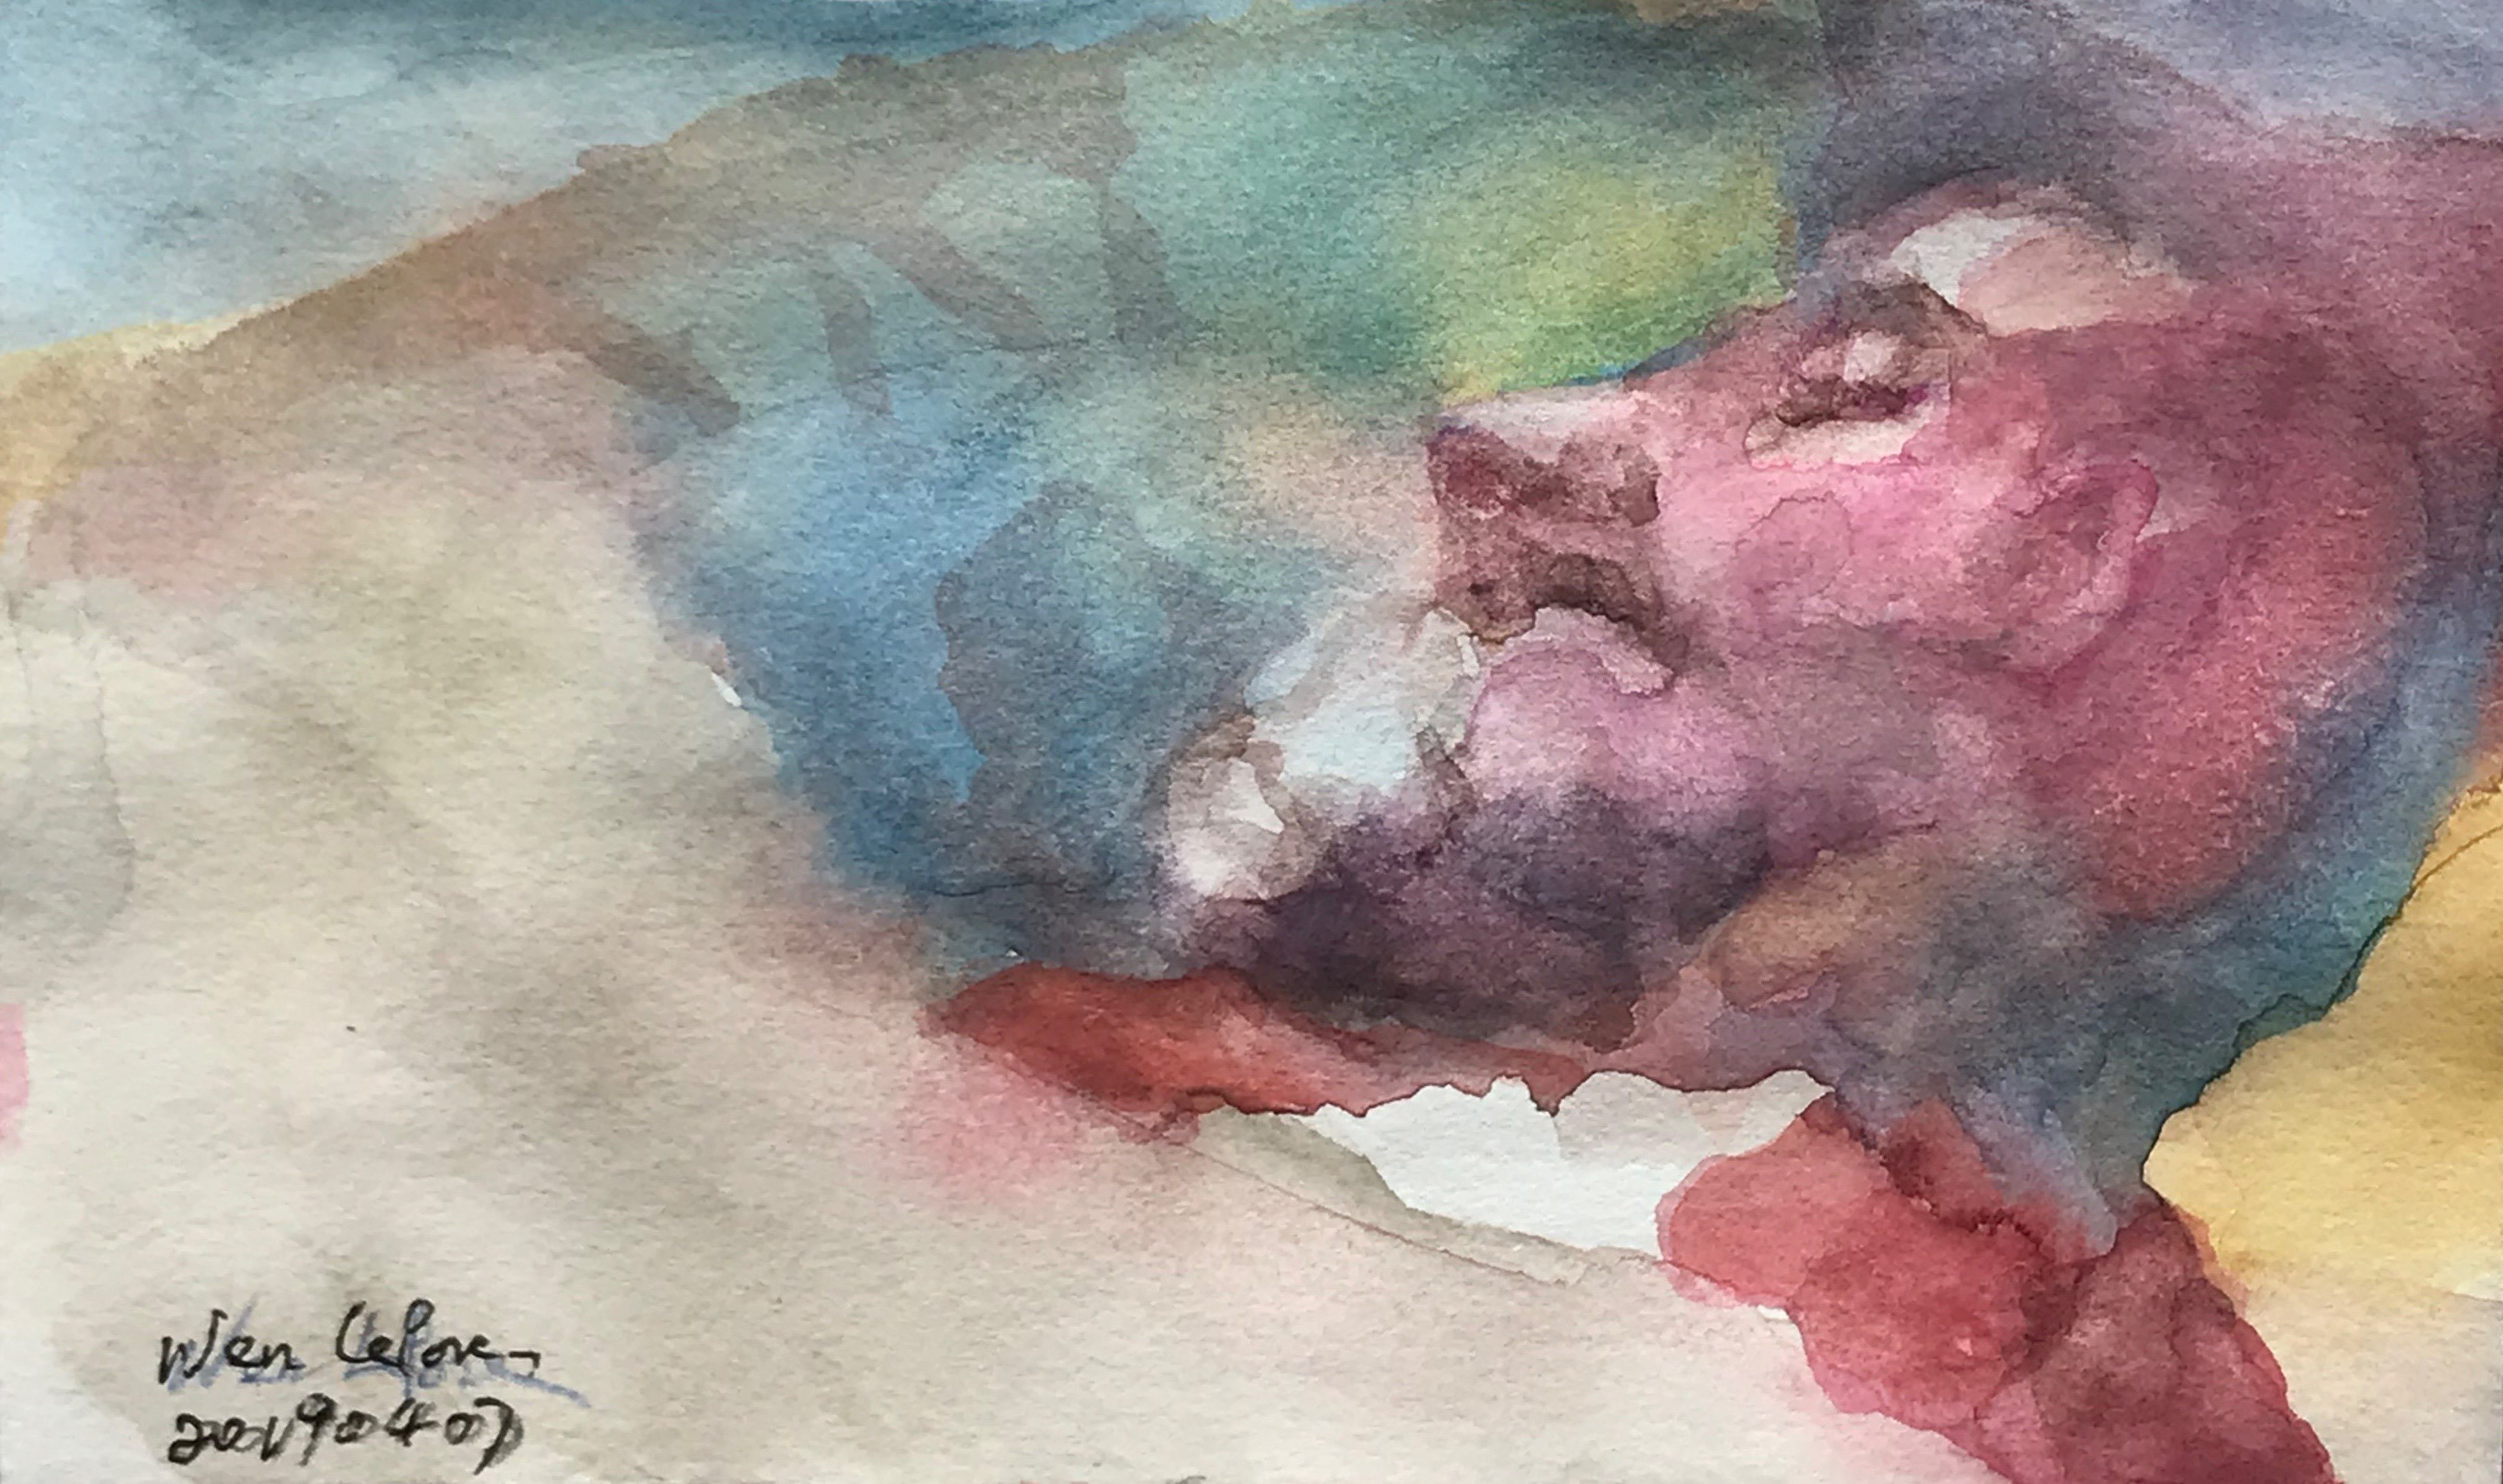 https://0901.nccdn.net/4_2/000/000/002/283/wen_lepore_watercolor201904-copy-3663x2172.jpg